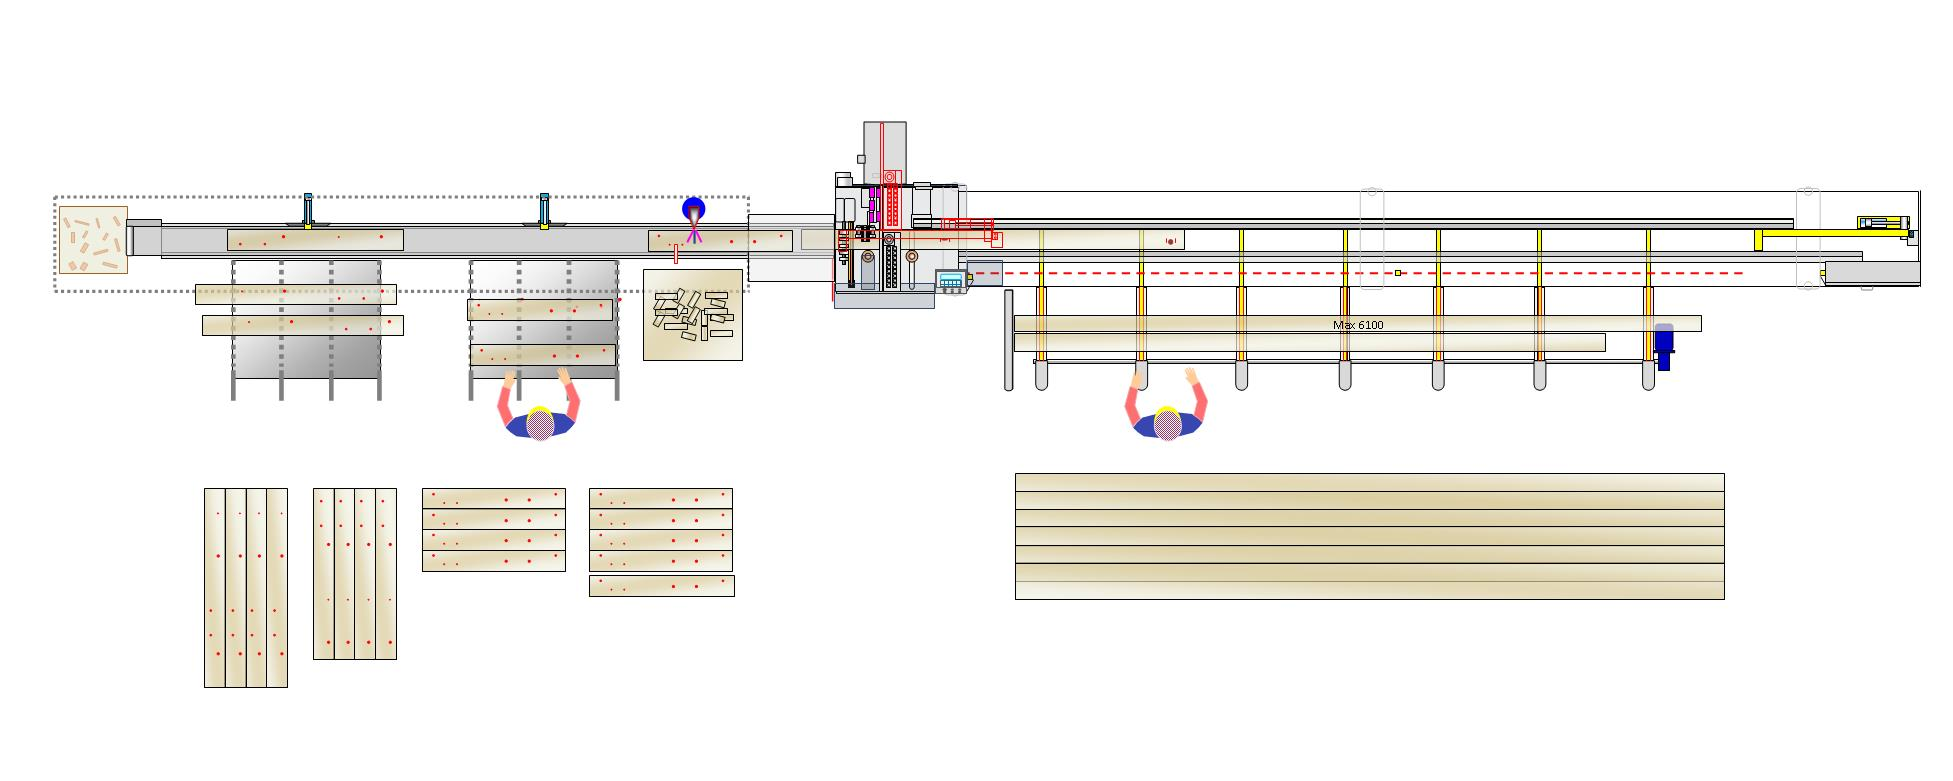 optimizing-push-feed-saws-trsi-500-integrated-drilling-system-Concept 01